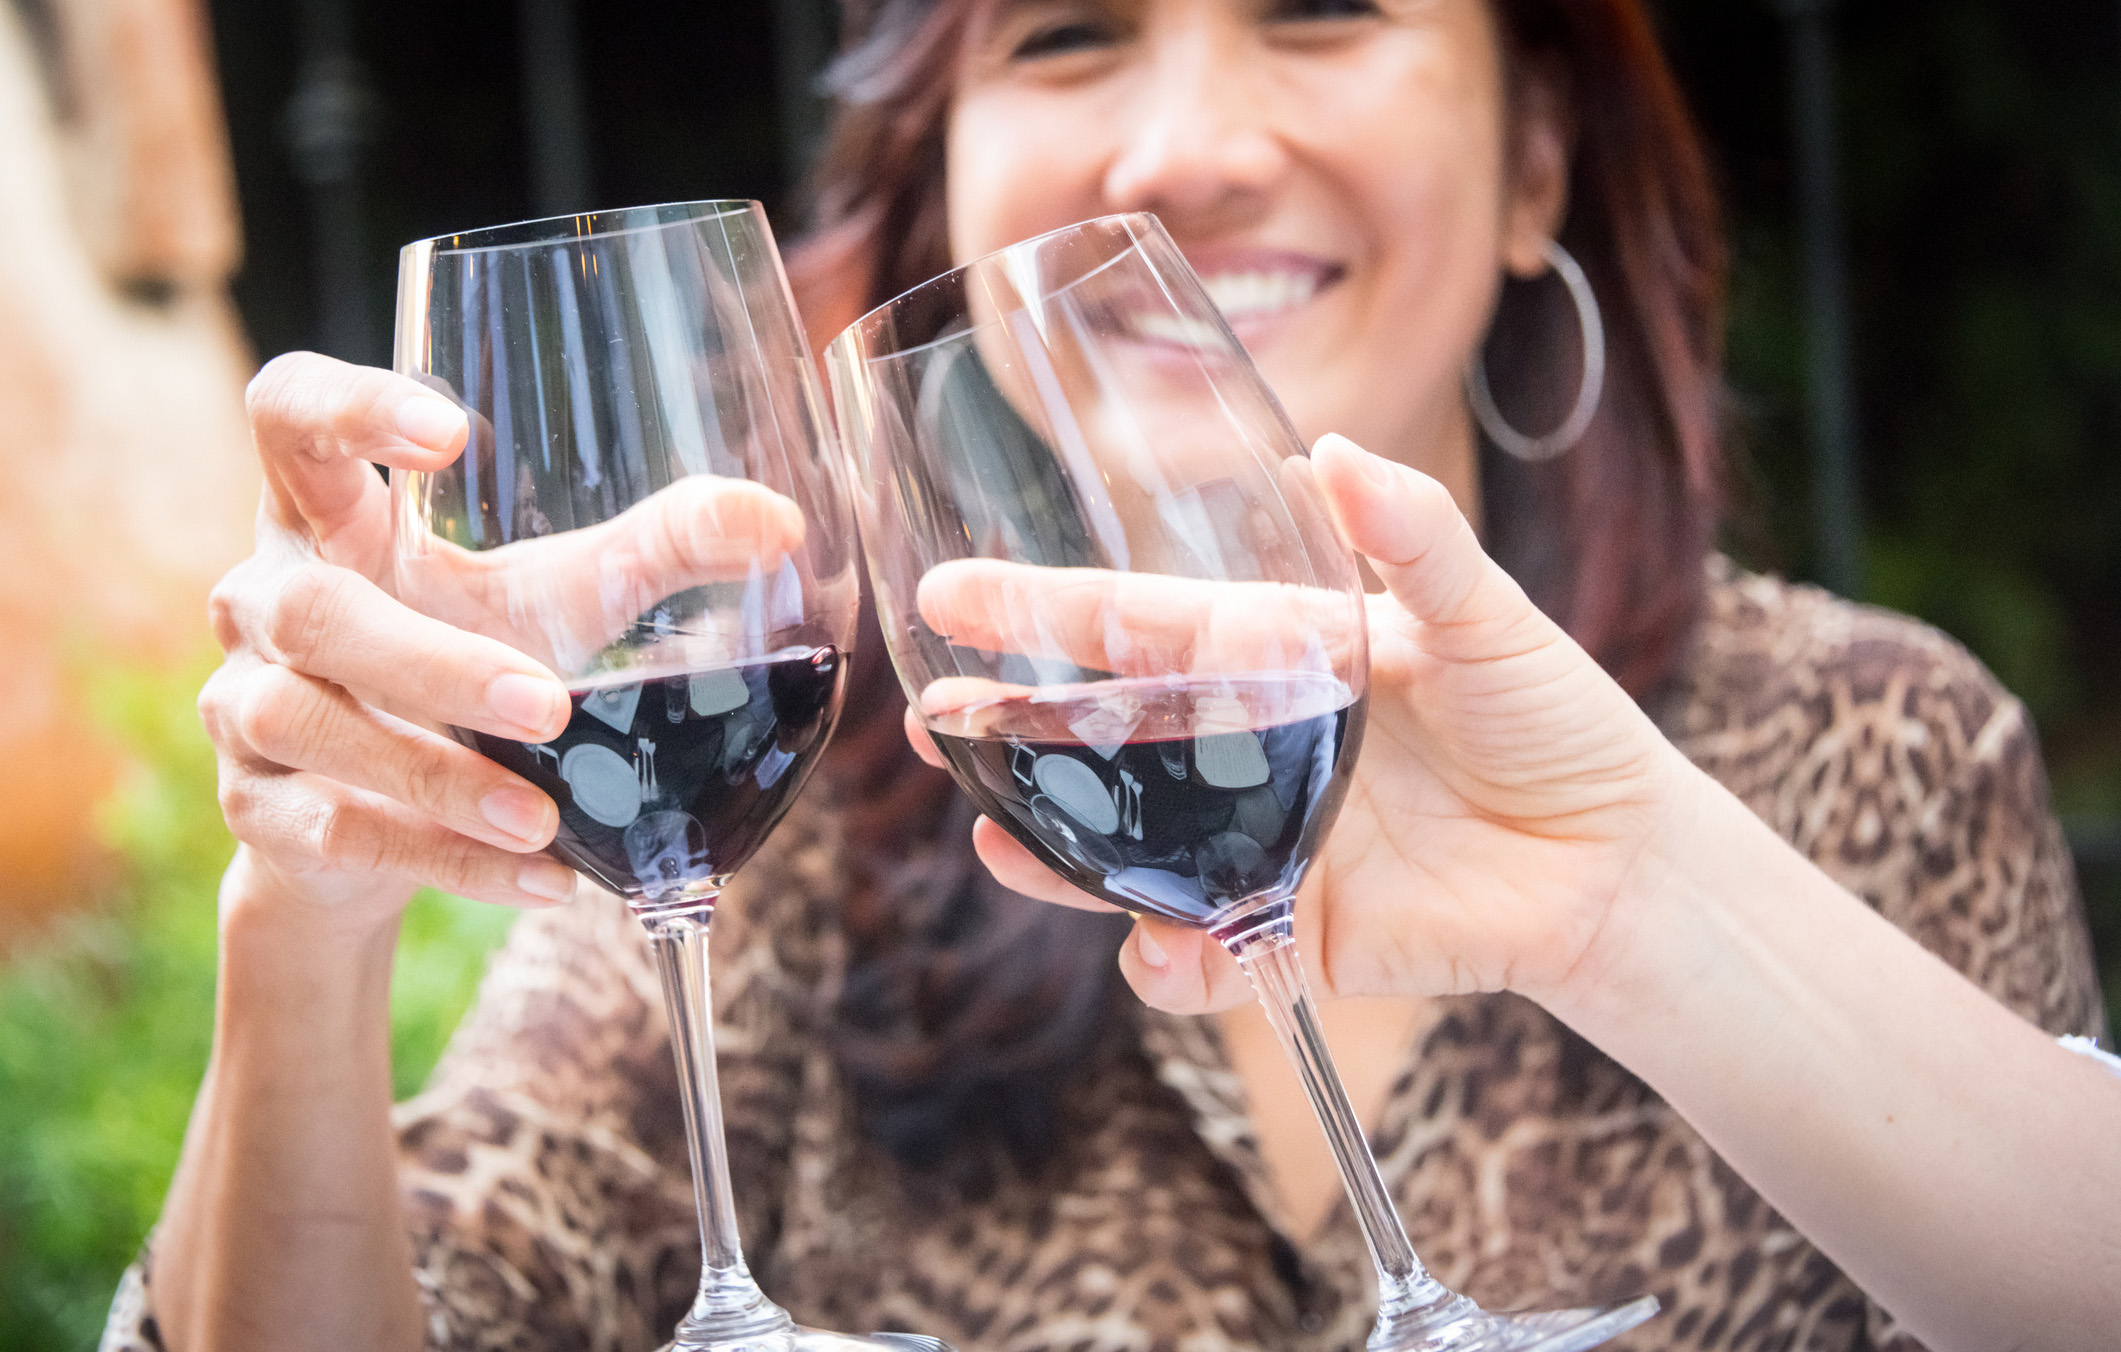 A tasting is never too far away in Sonoma County, so grab a glass, and get started.